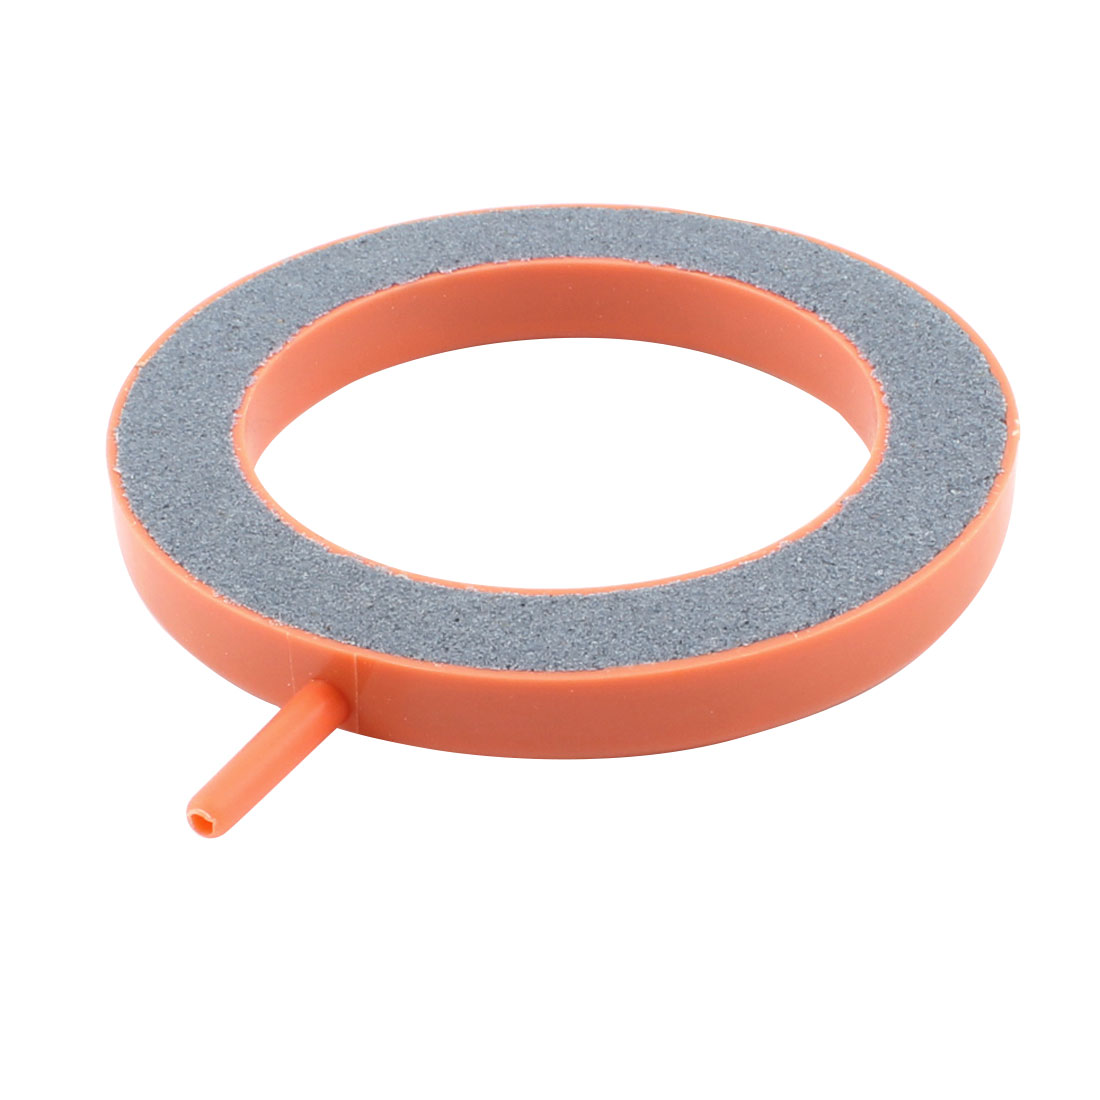 3mm Air Inlet Dia Round Bubble Airstone Orange Gray for Aquarium Fish Tank